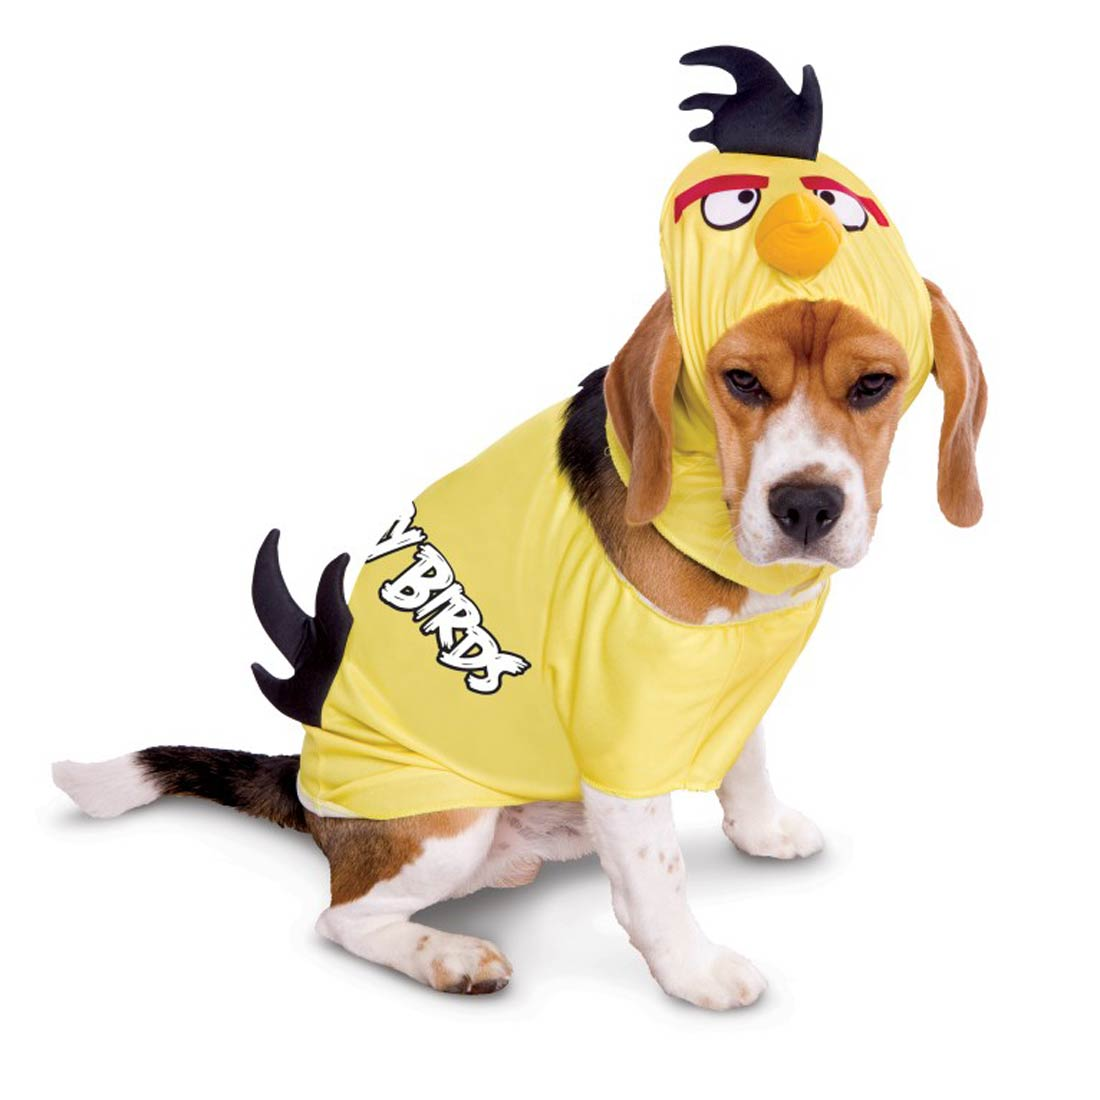 6748347-Angry-Birds-Yellow-Bird-Dog-Costume-large